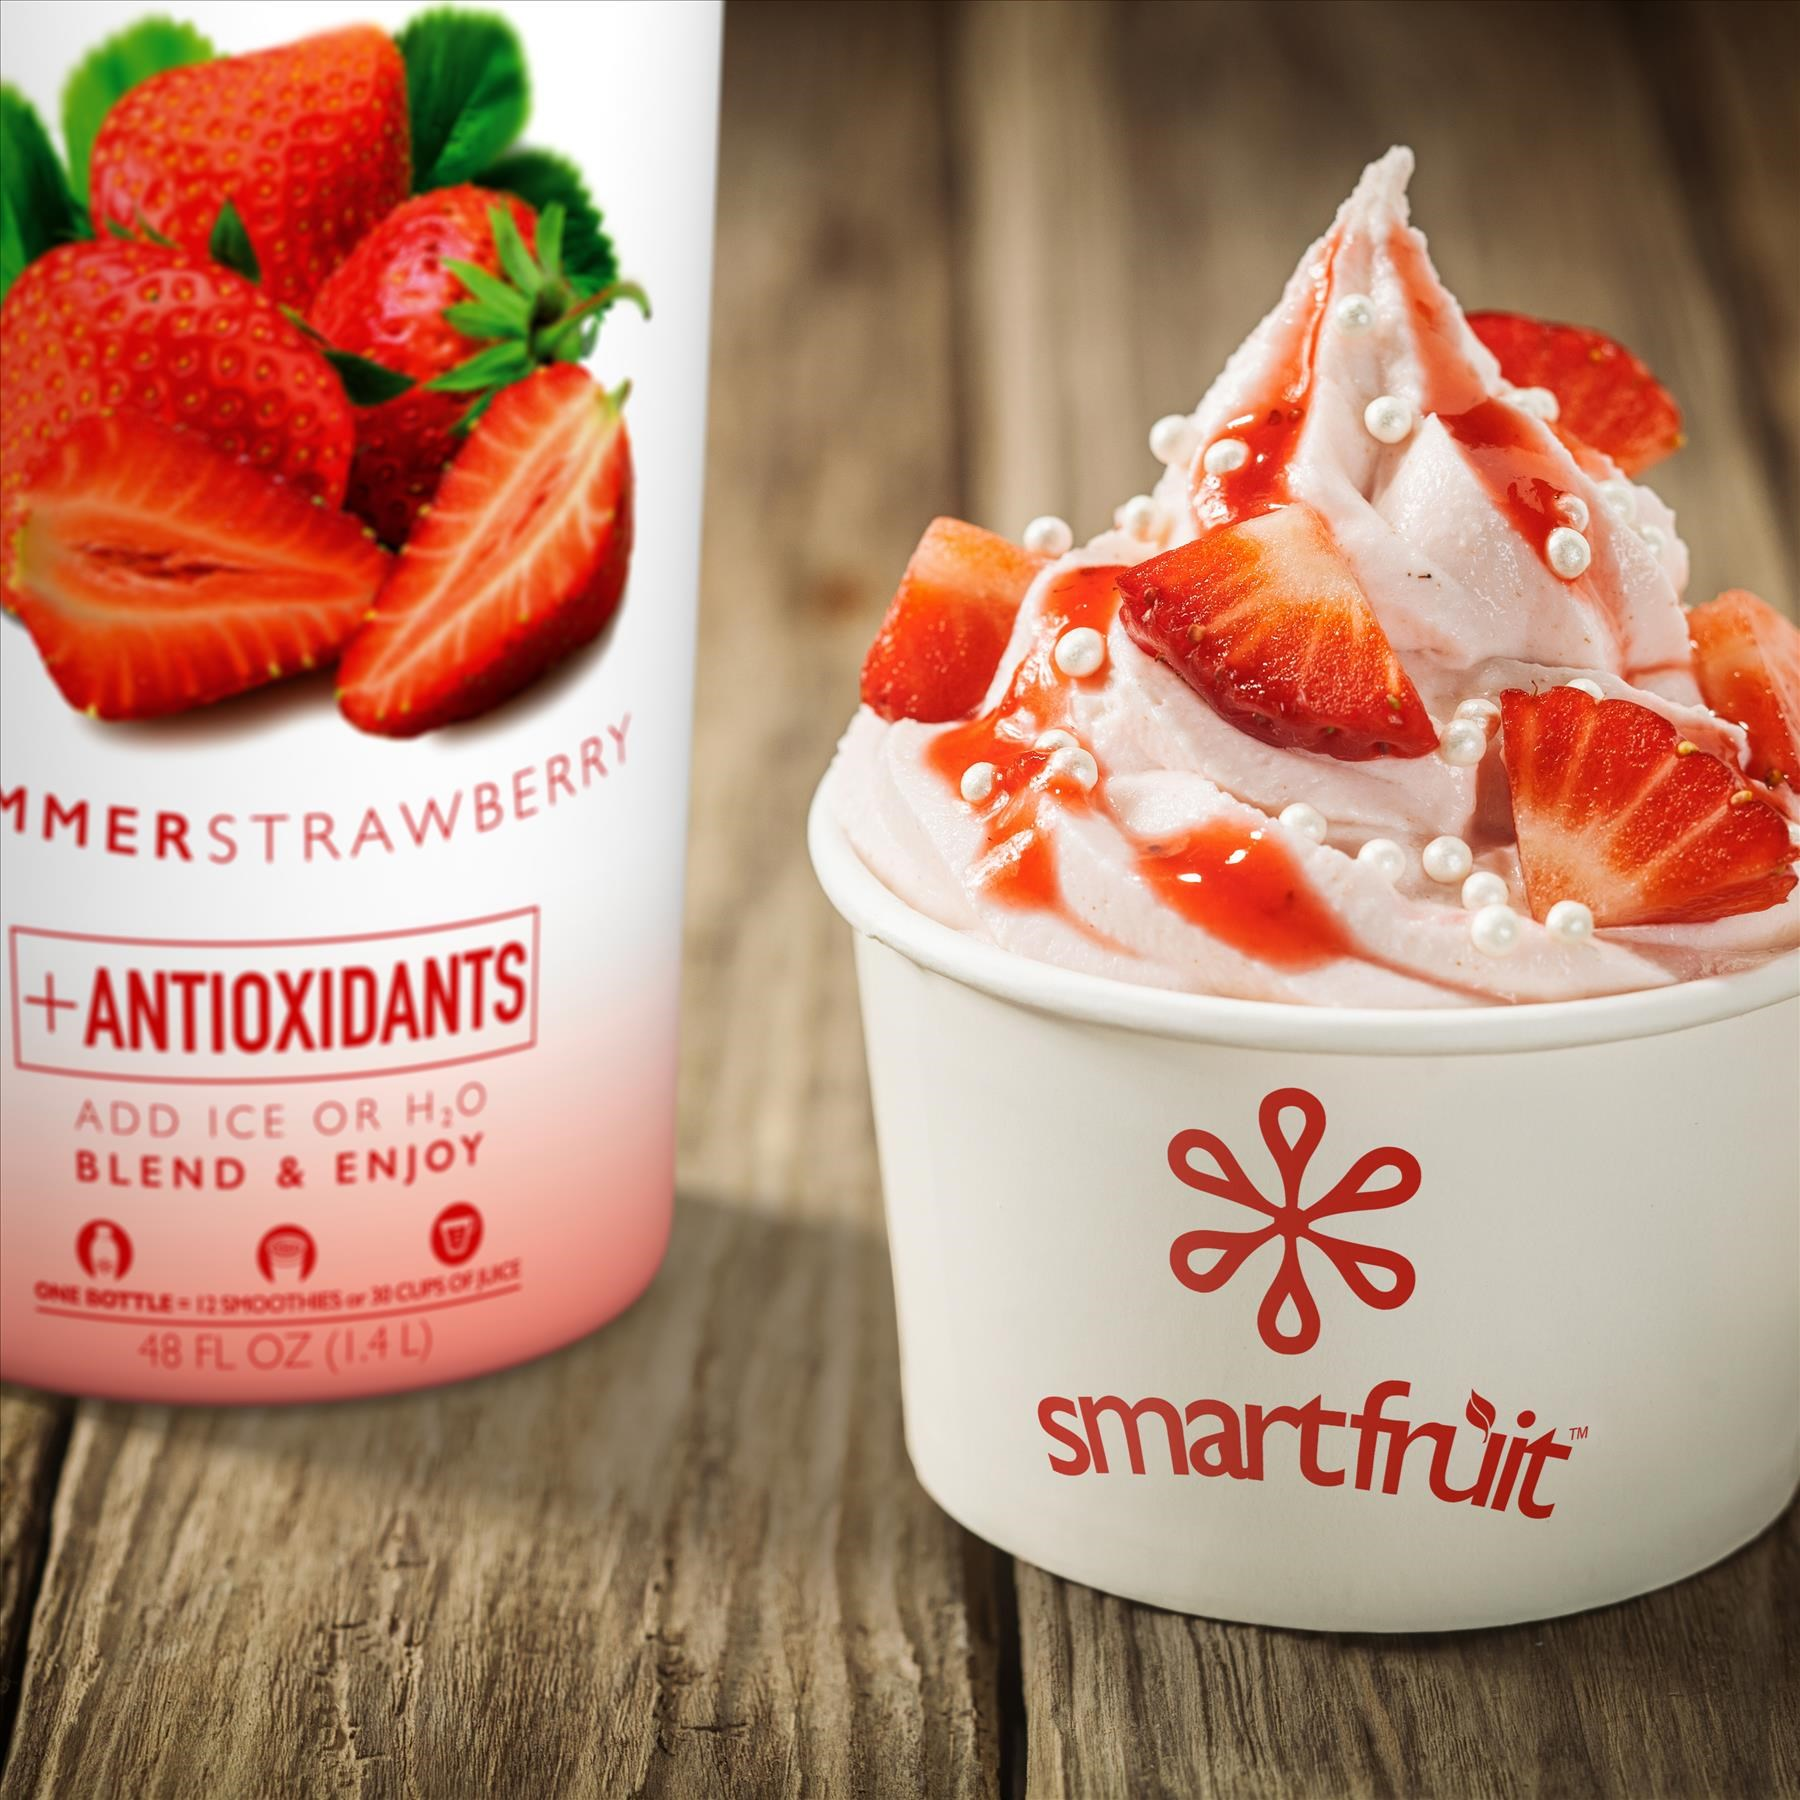 Strawberry Froyo Made with Smoothie Mix